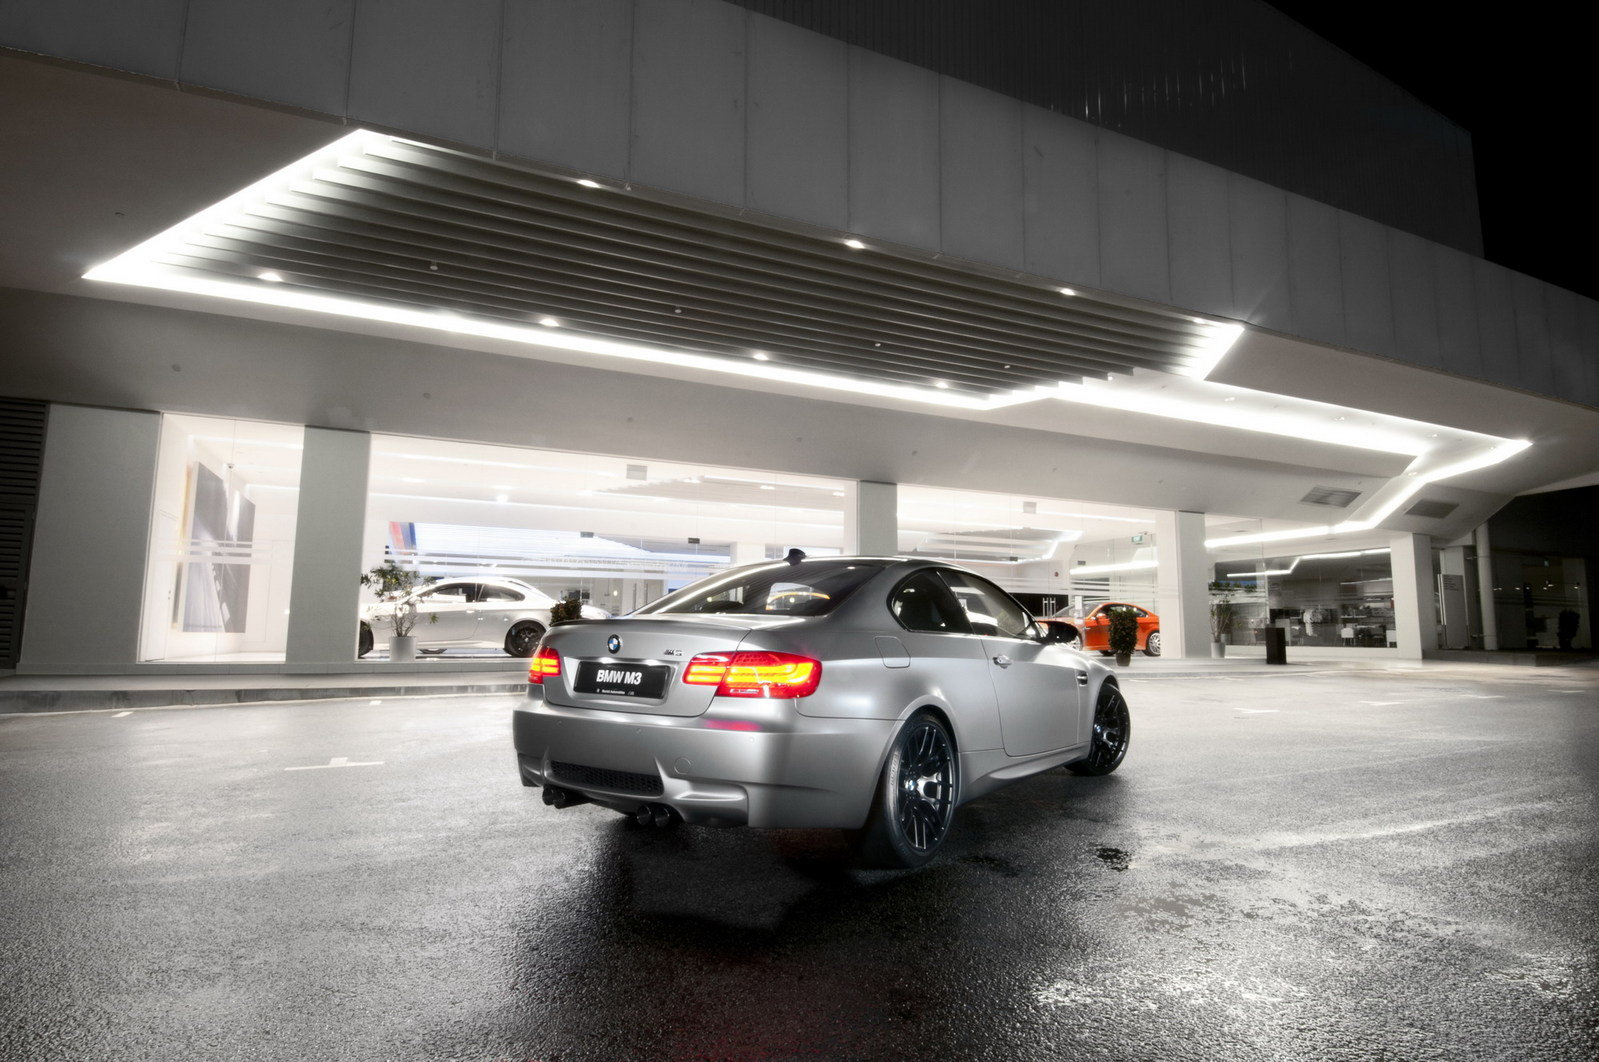 http://pictures.topspeed.com/IMG/crop/201202/bmw-m3-coupe-competi-1_1600x0w.jpg